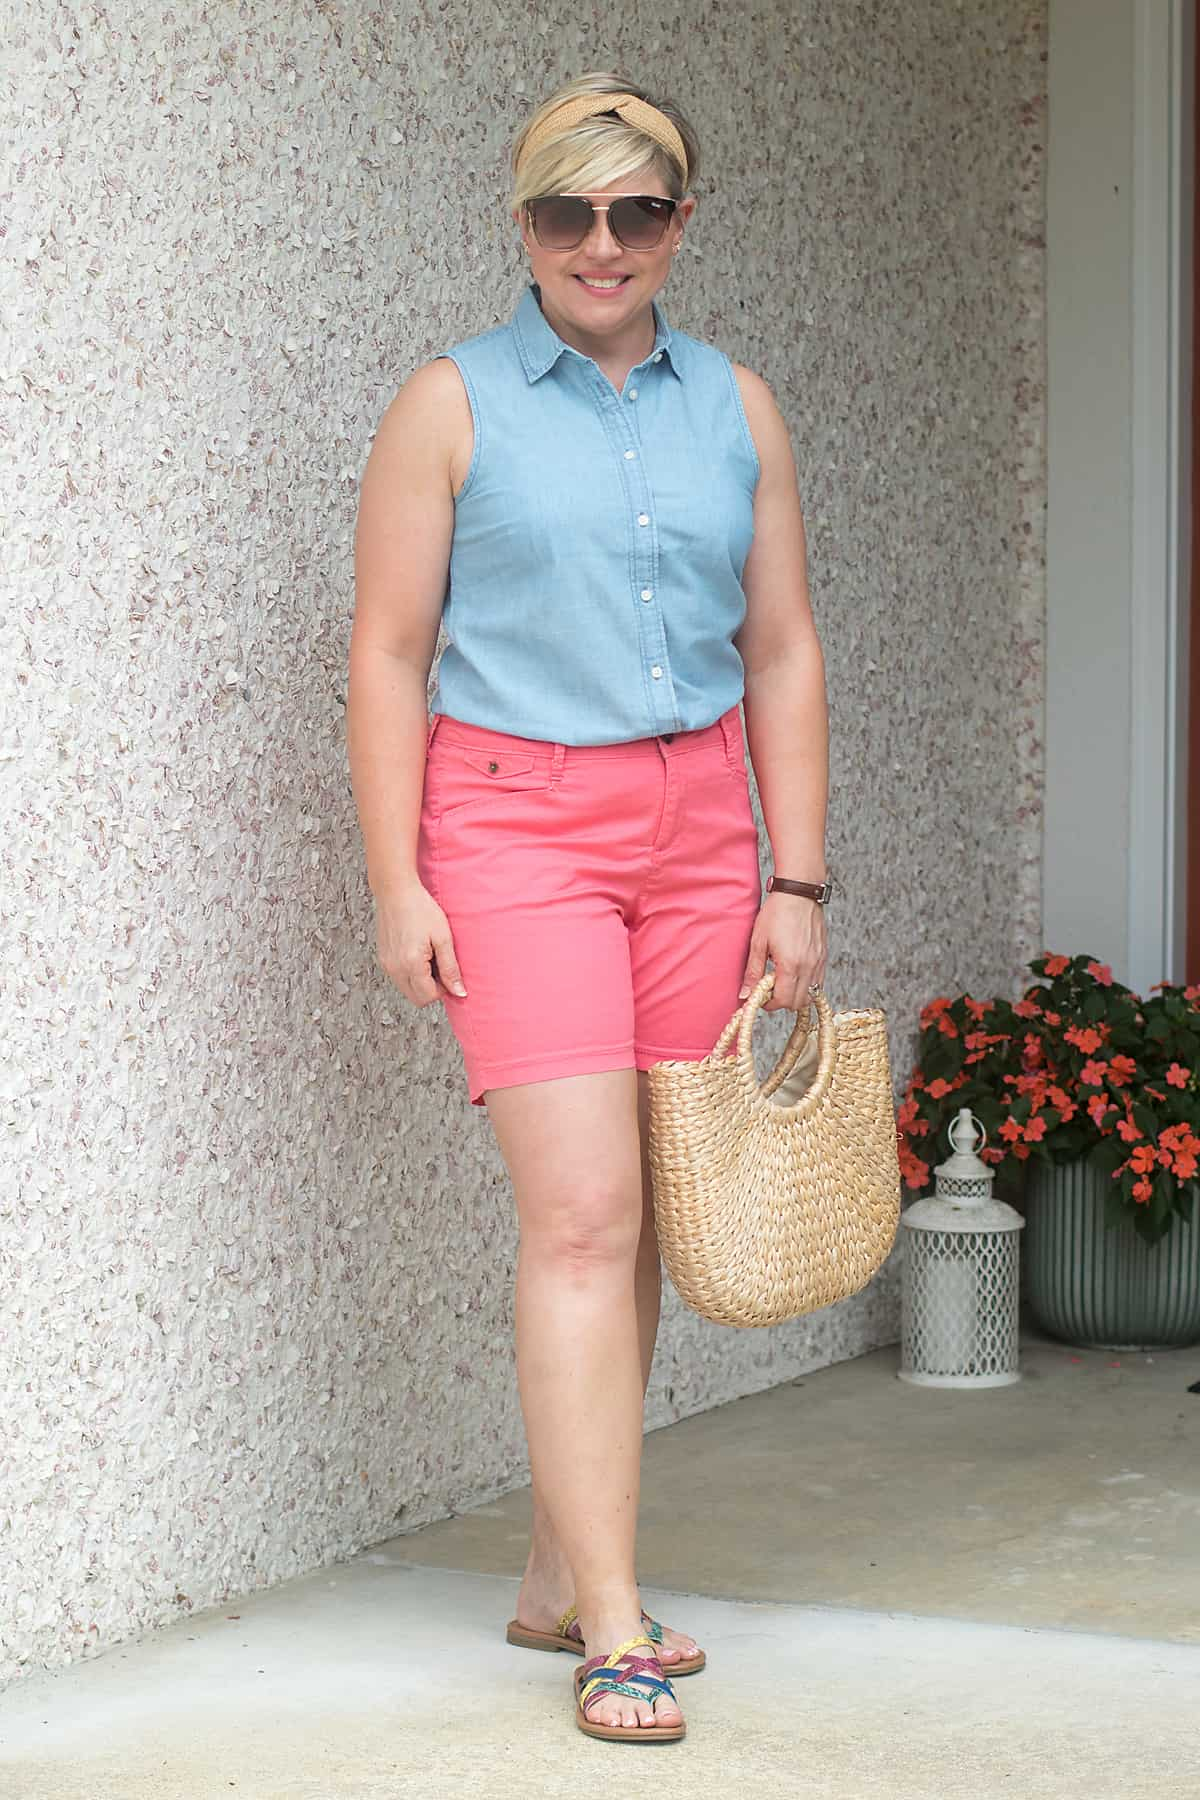 women's summer outfit with straw accessories